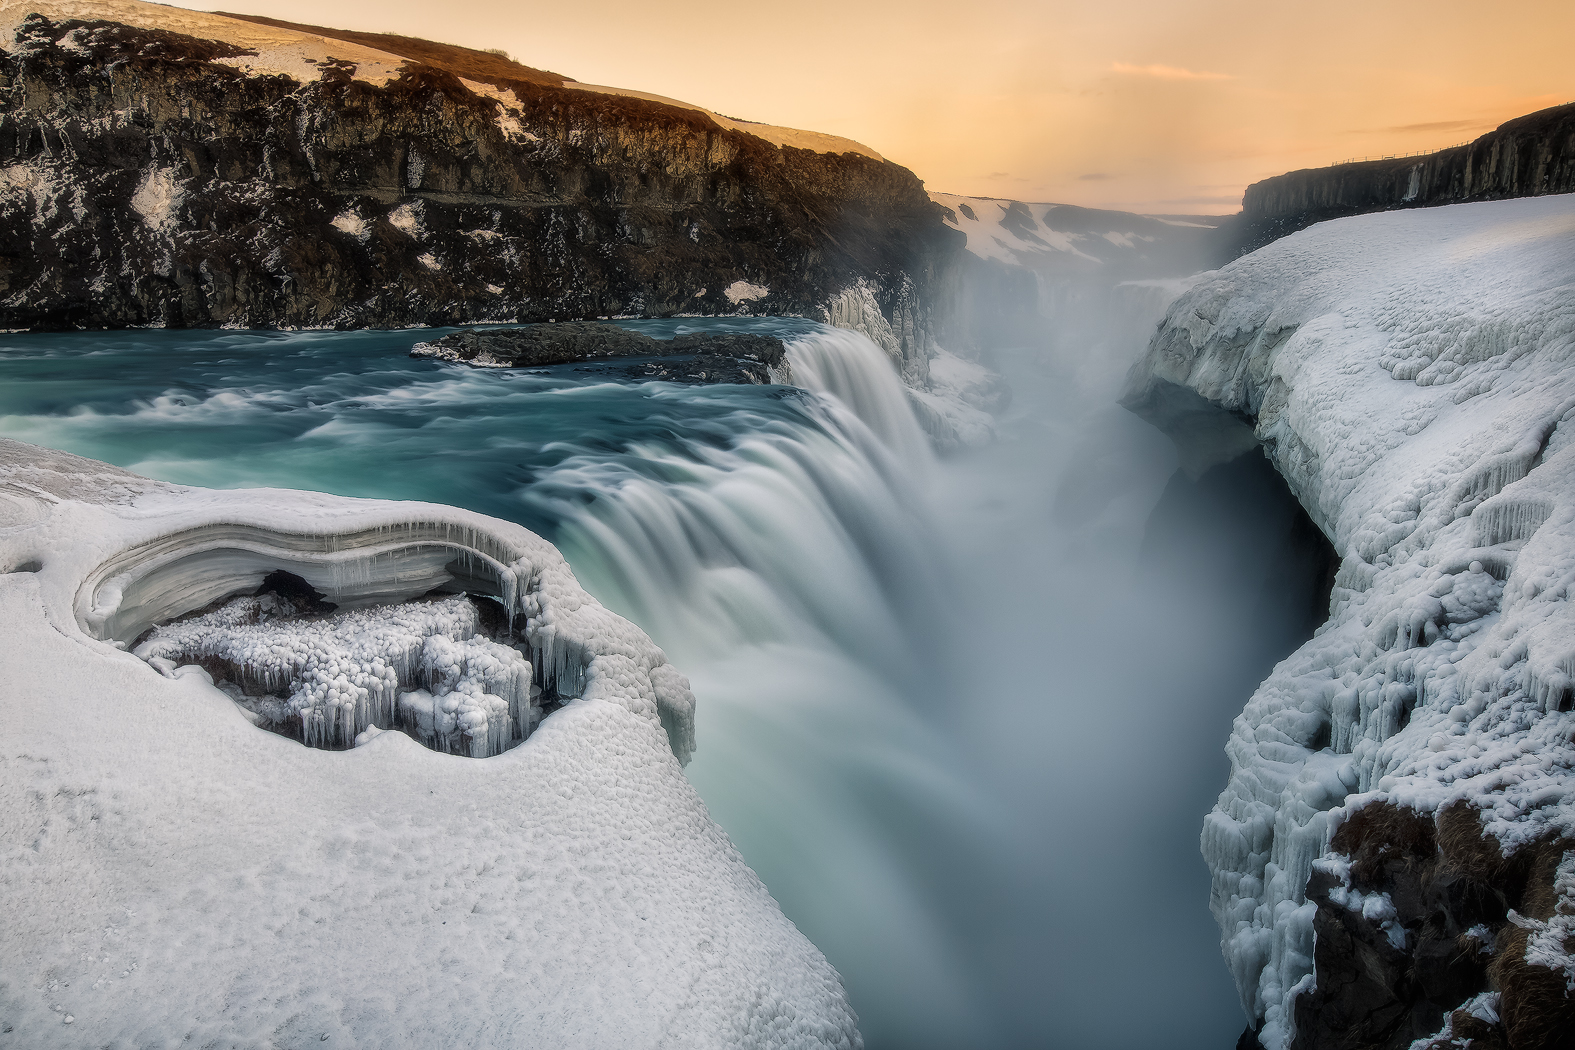 The frozen facade of Gullfoss waterfall in the chilly winter sunshine.